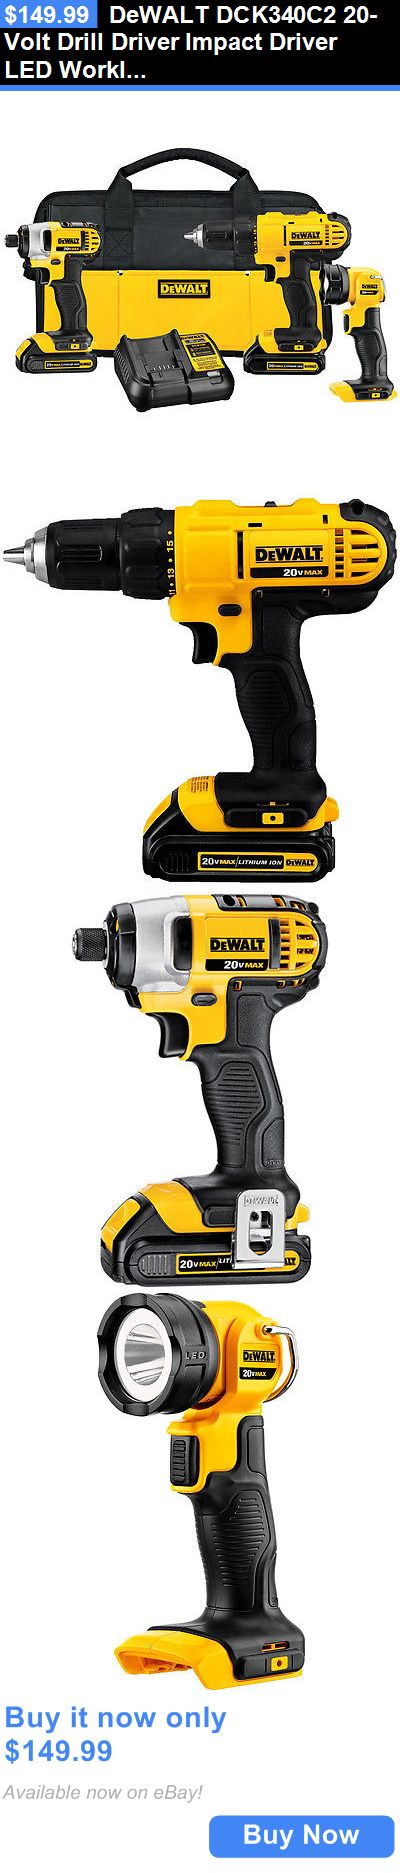 tools: Dewalt Dck340c2 20-Volt Drill Driver Impact Driver Led Worklight Combo Tool Kit BUY IT NOW ONLY: $149.99